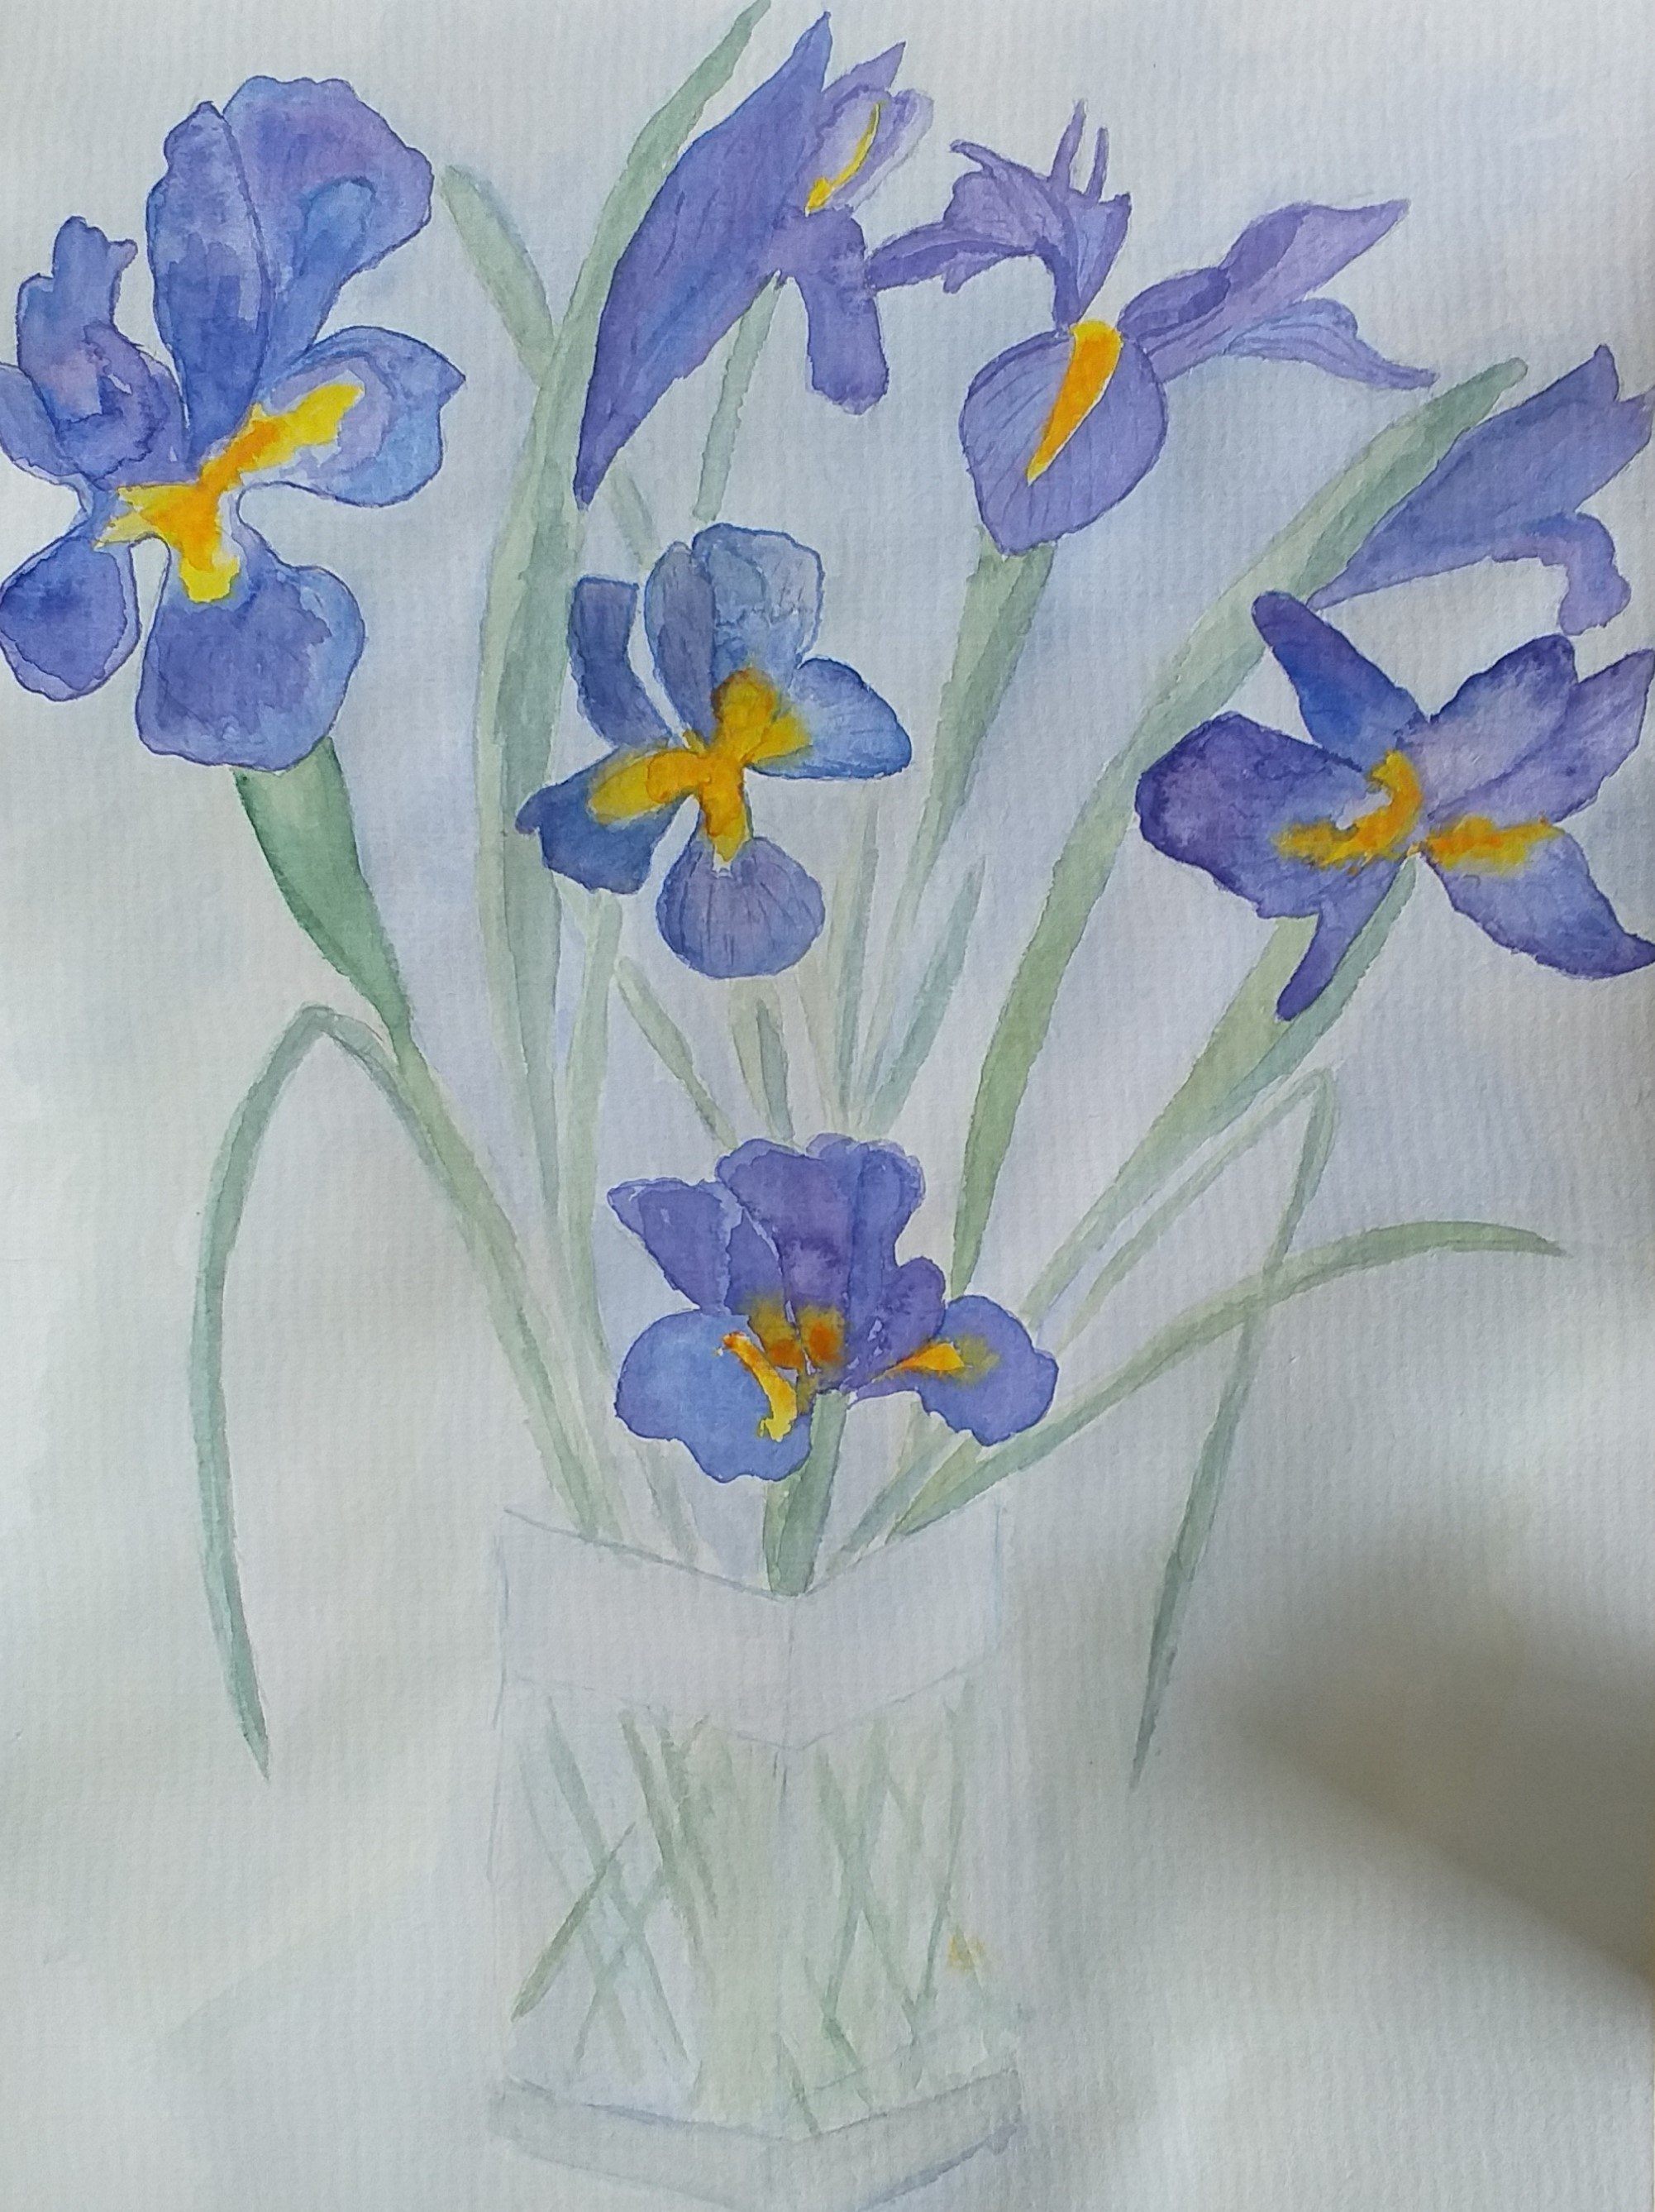 Marion's work created at Watercolour art course in Worcestershire